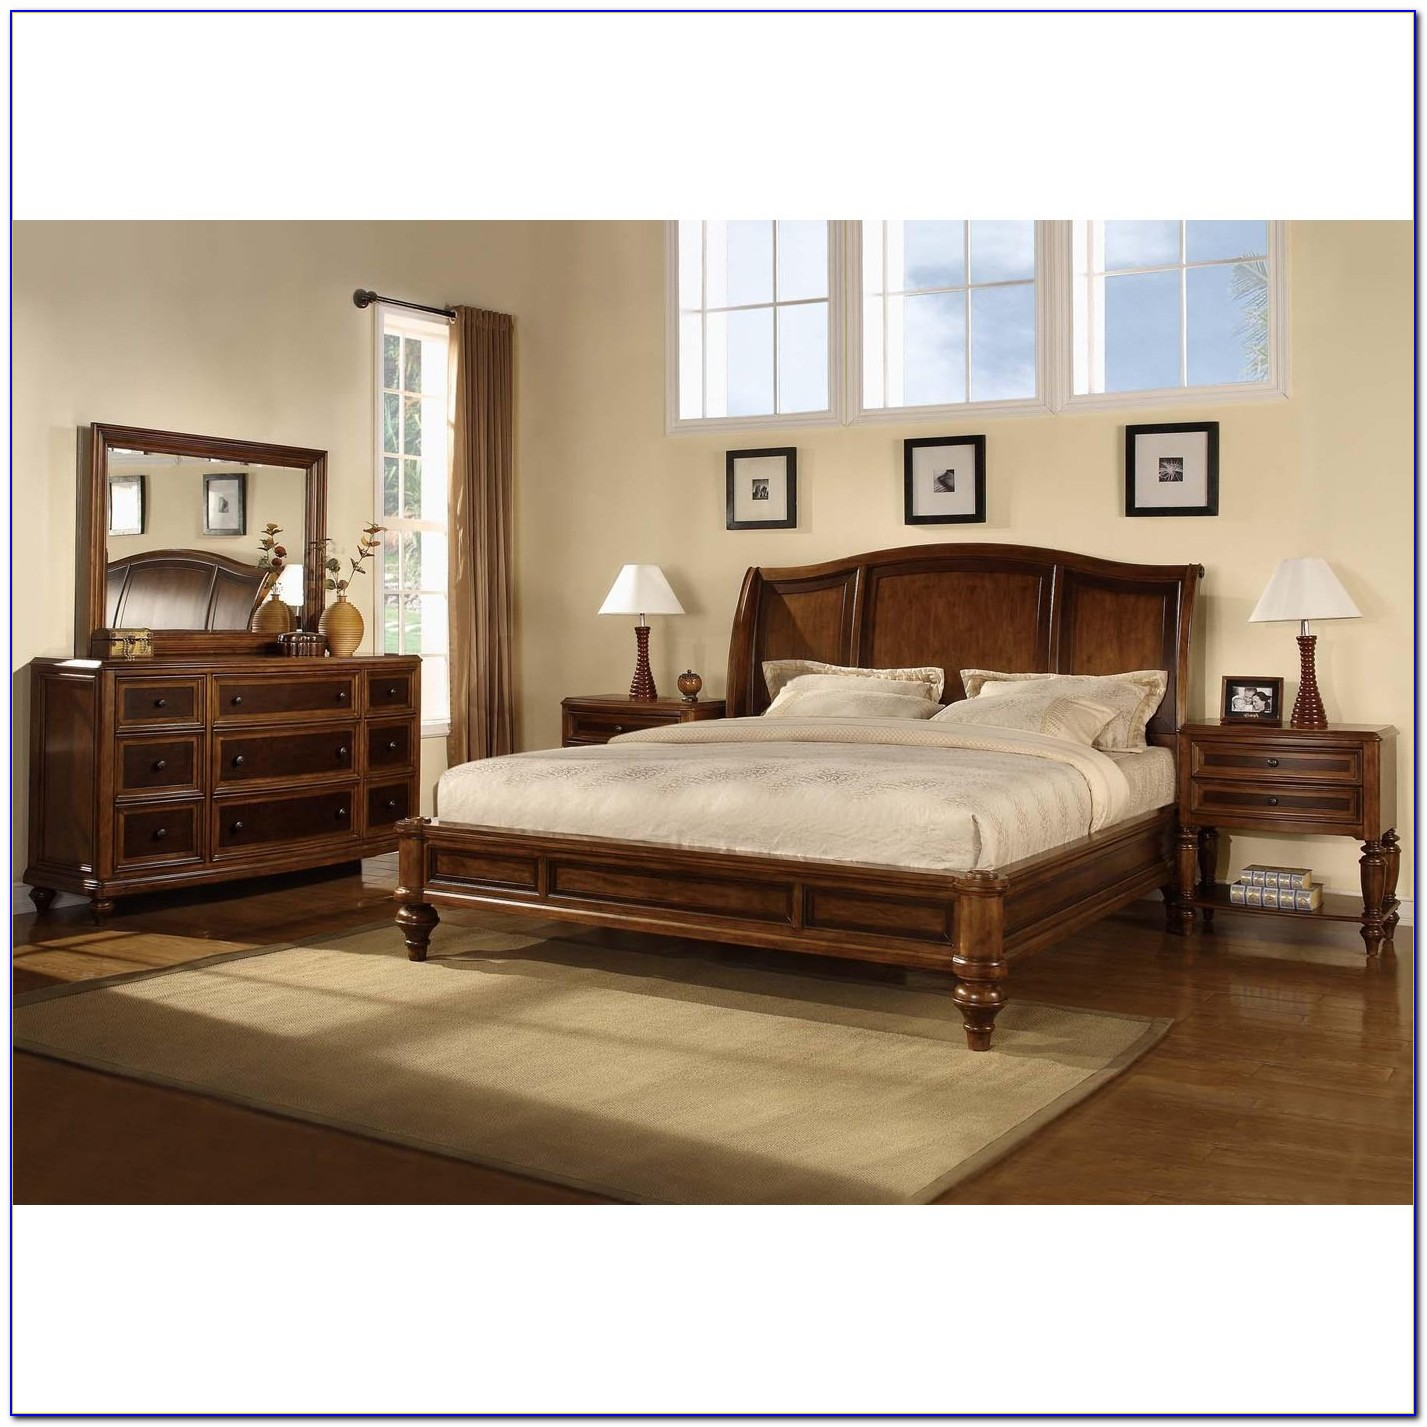 Top Rated King Bedroom Sets